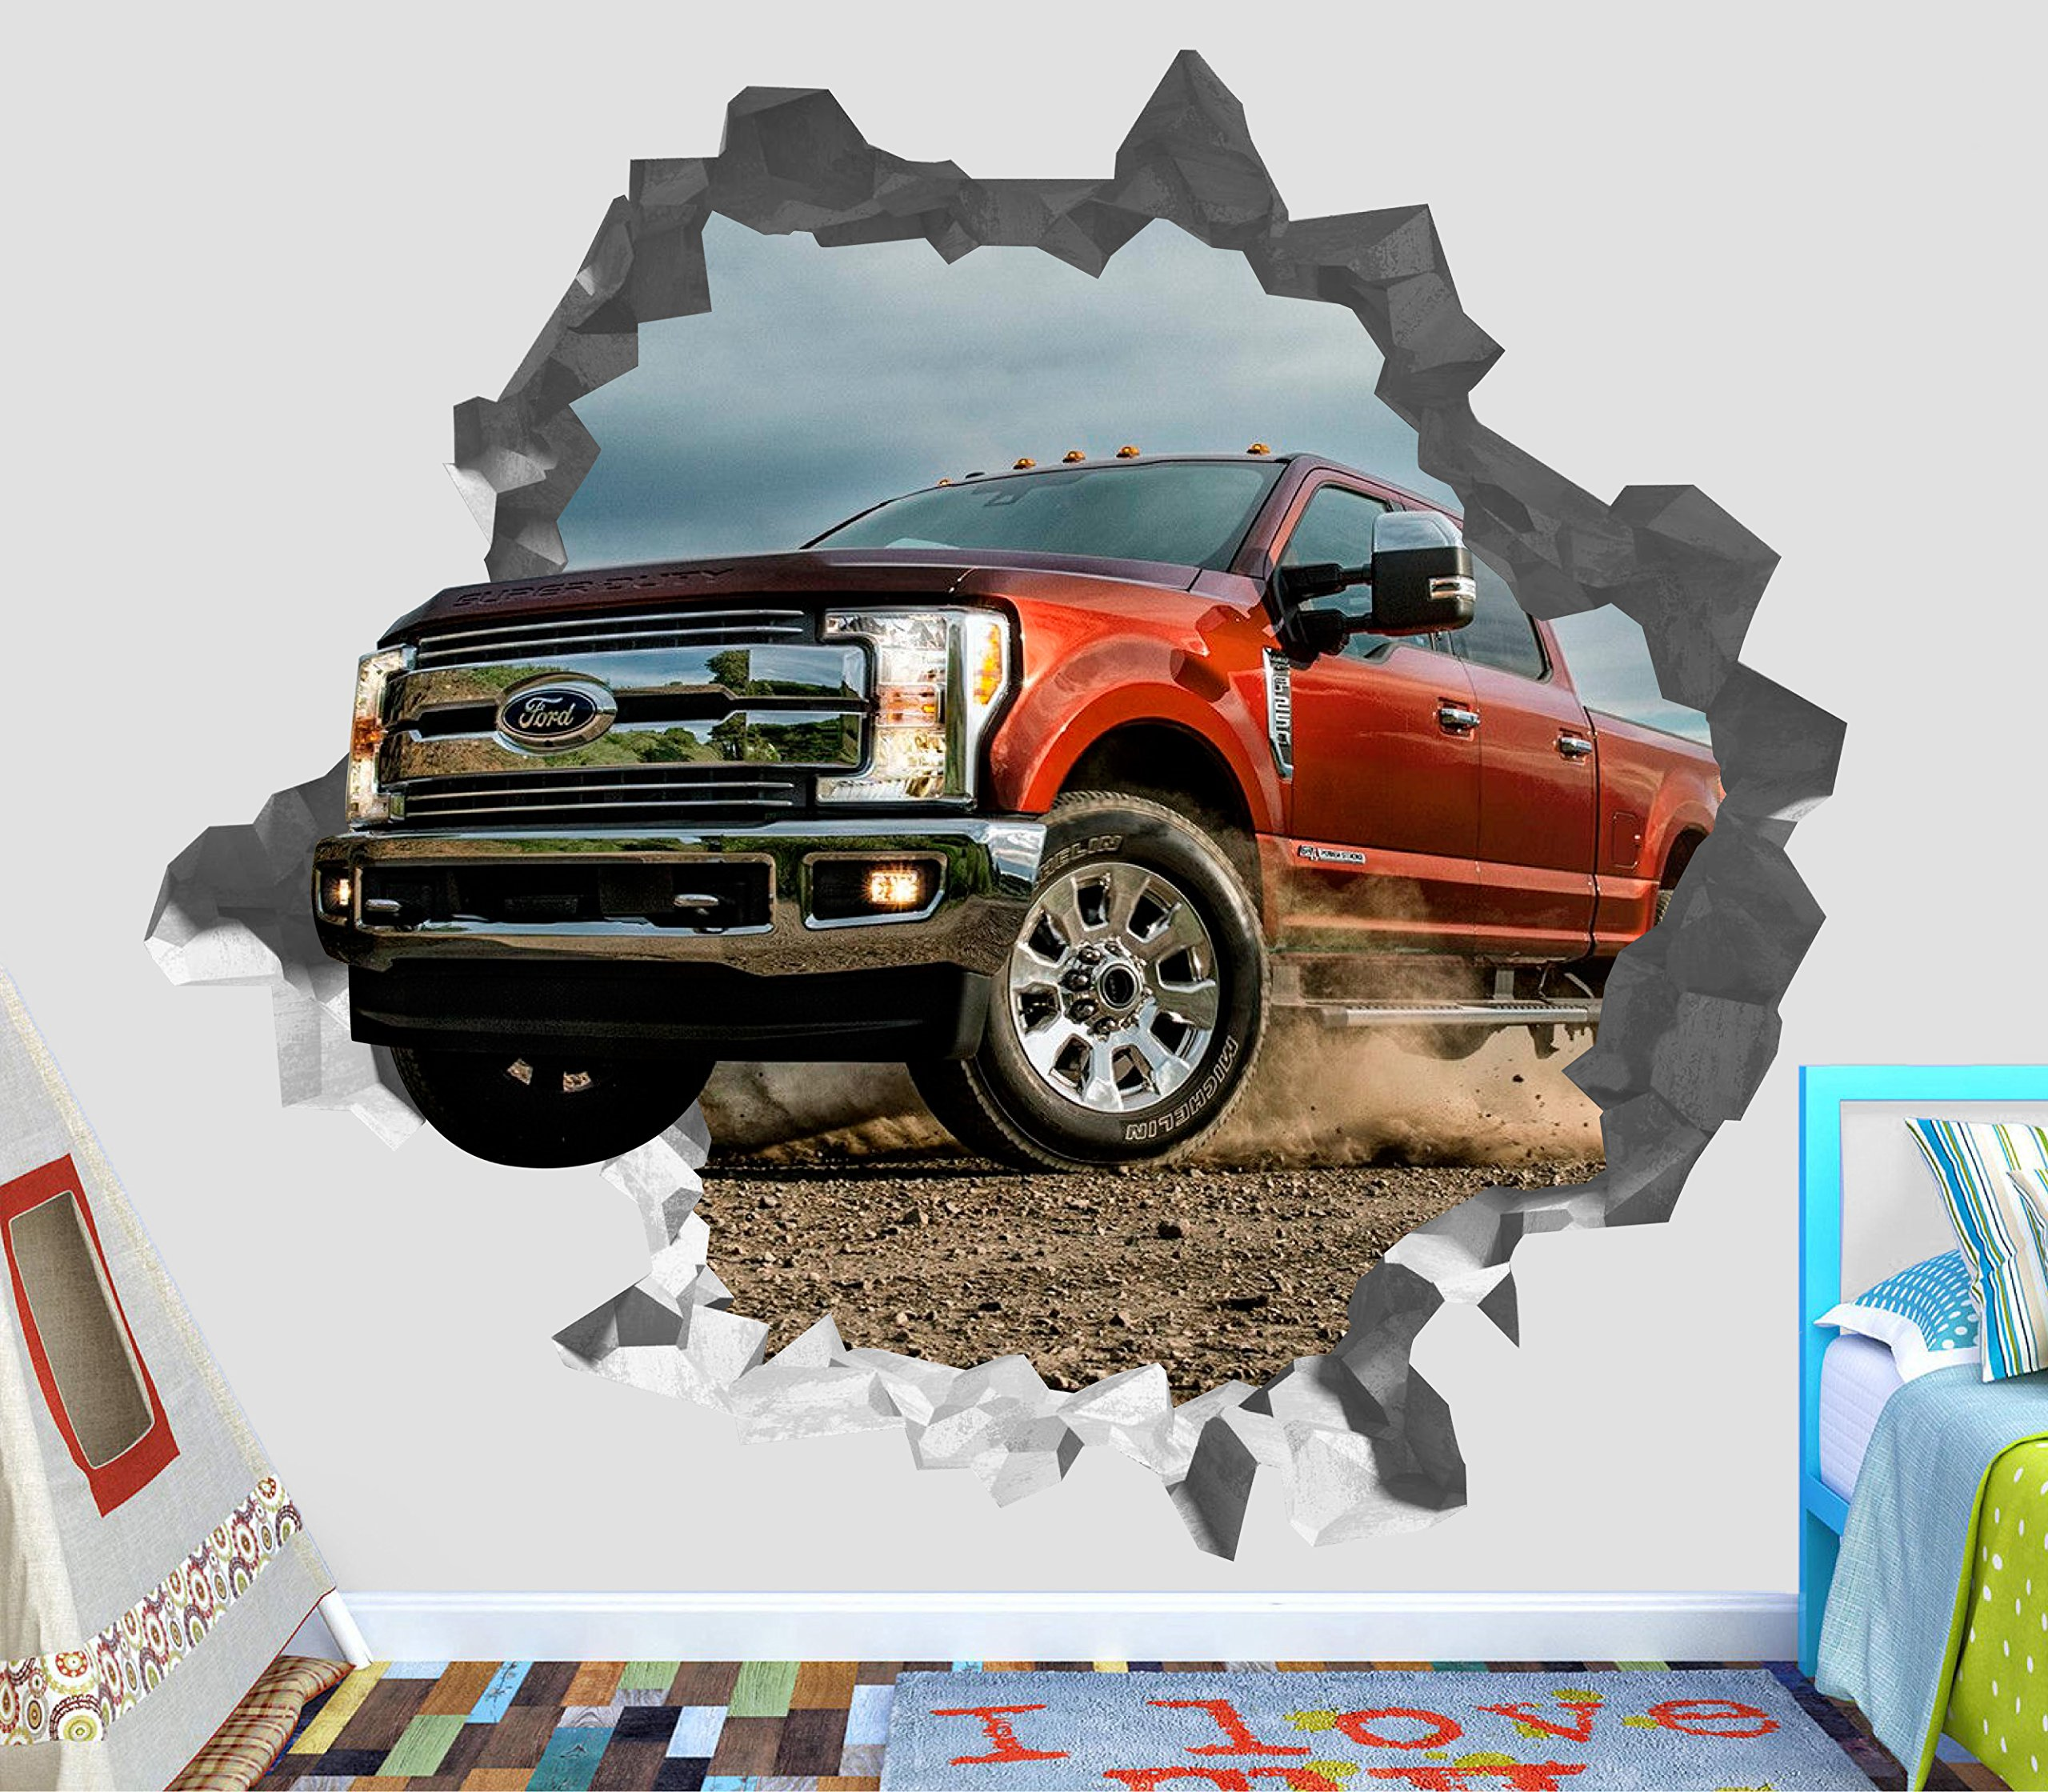 Ford F250 Super Duty Pickup Truck Red Wall Decal Sticker Vinyl Decor Door Window Mural - Broken Wall - 3D Designs - OP61 (Small (Wide 22'' x 16'' Height)) by DecorLab